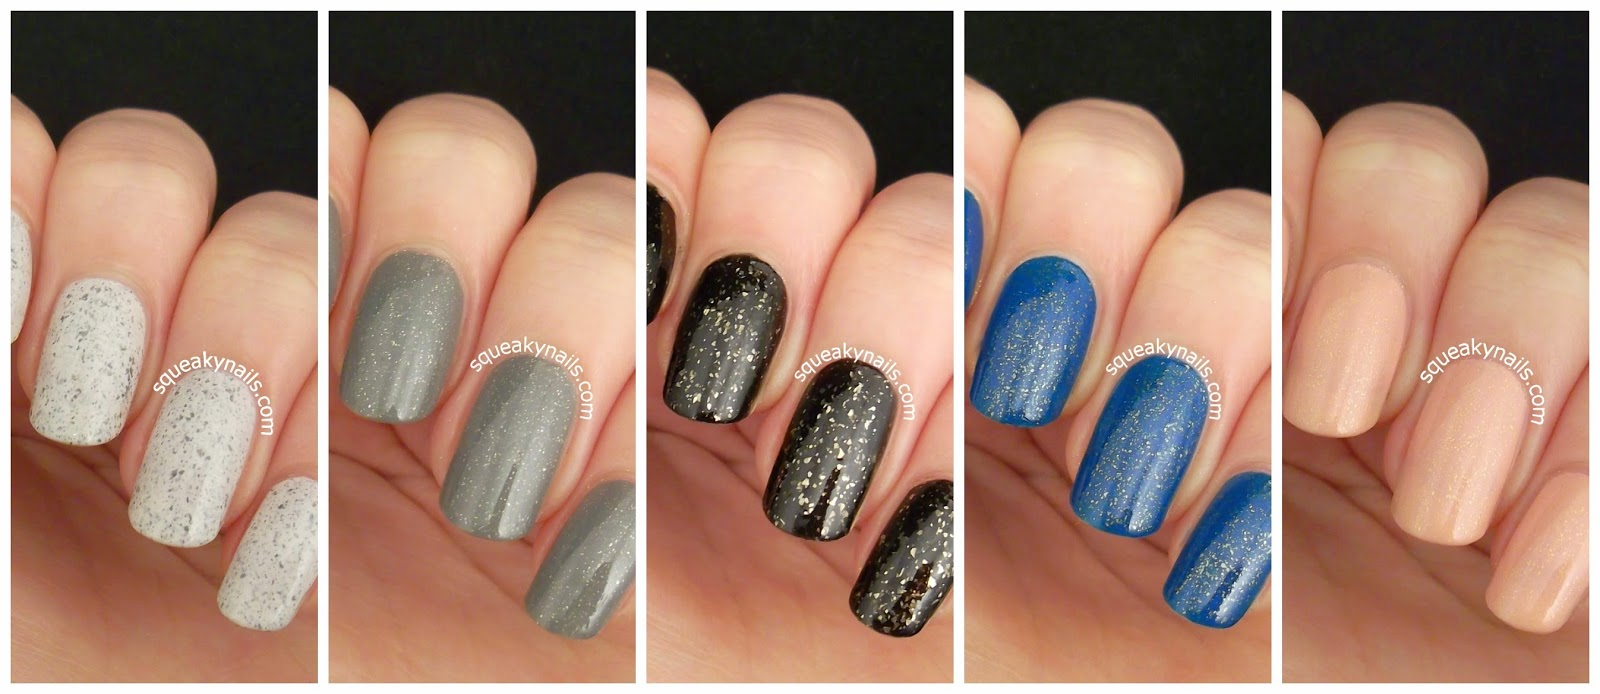 Cirque Colors Awakening Collection | Squeaky Nails